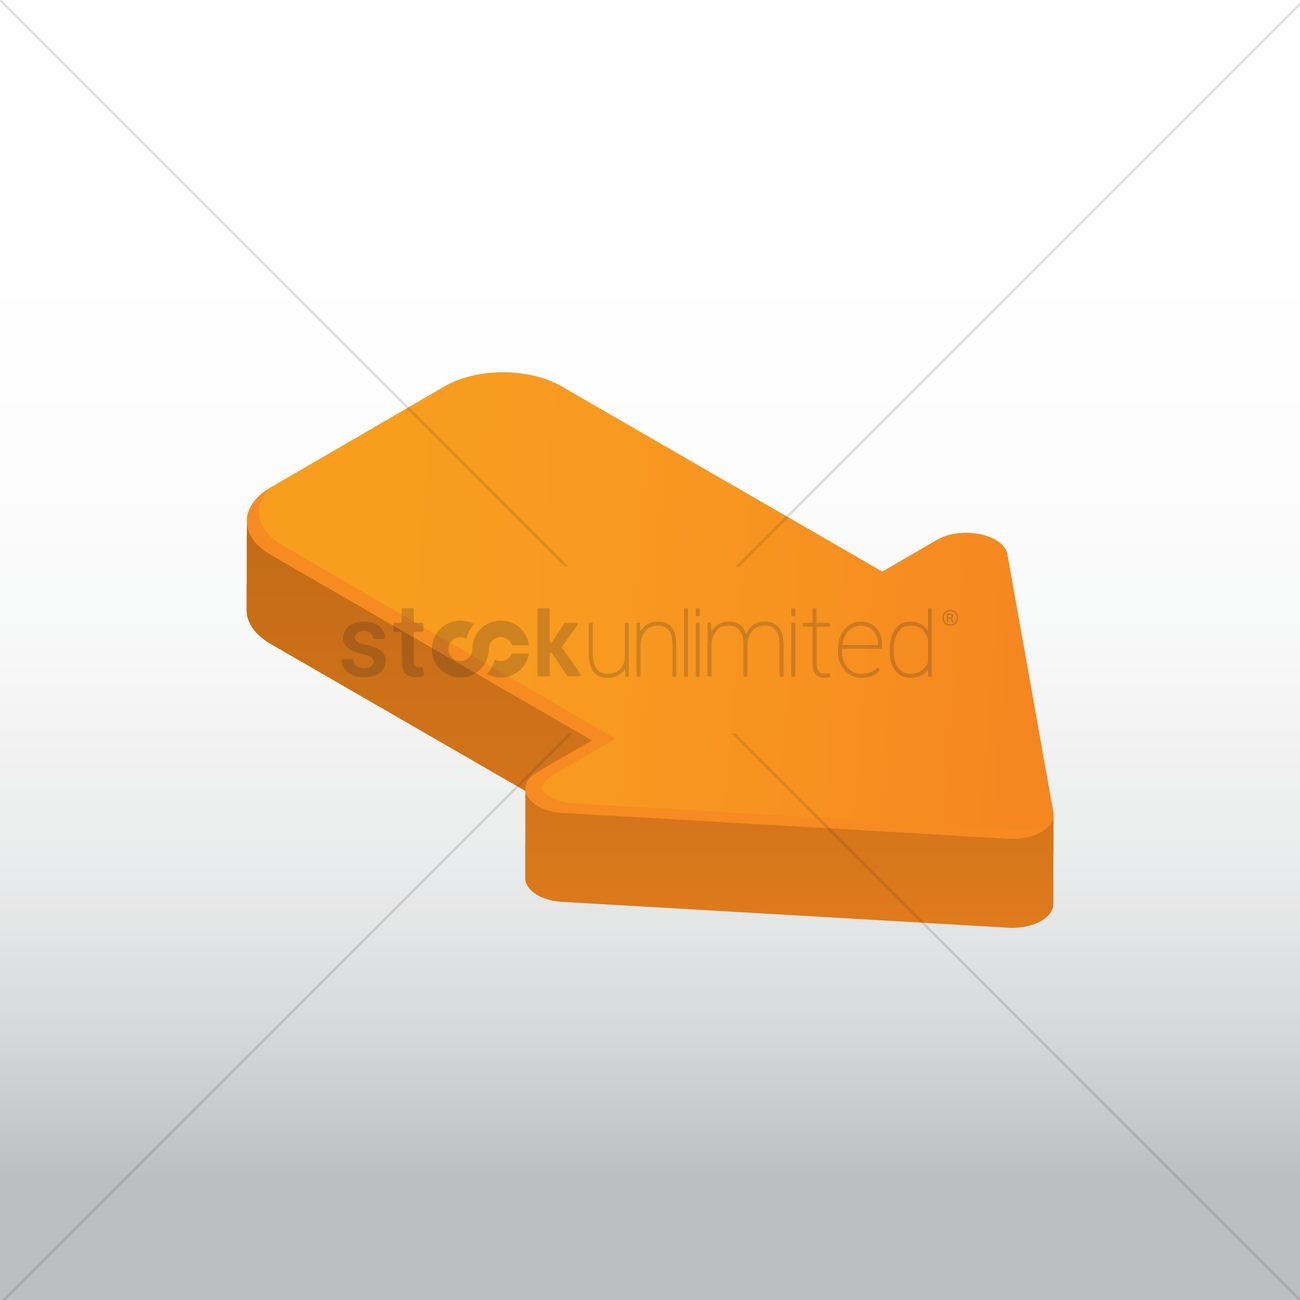 Right Side Arrow Vector Image 1631410 Stockunlimited